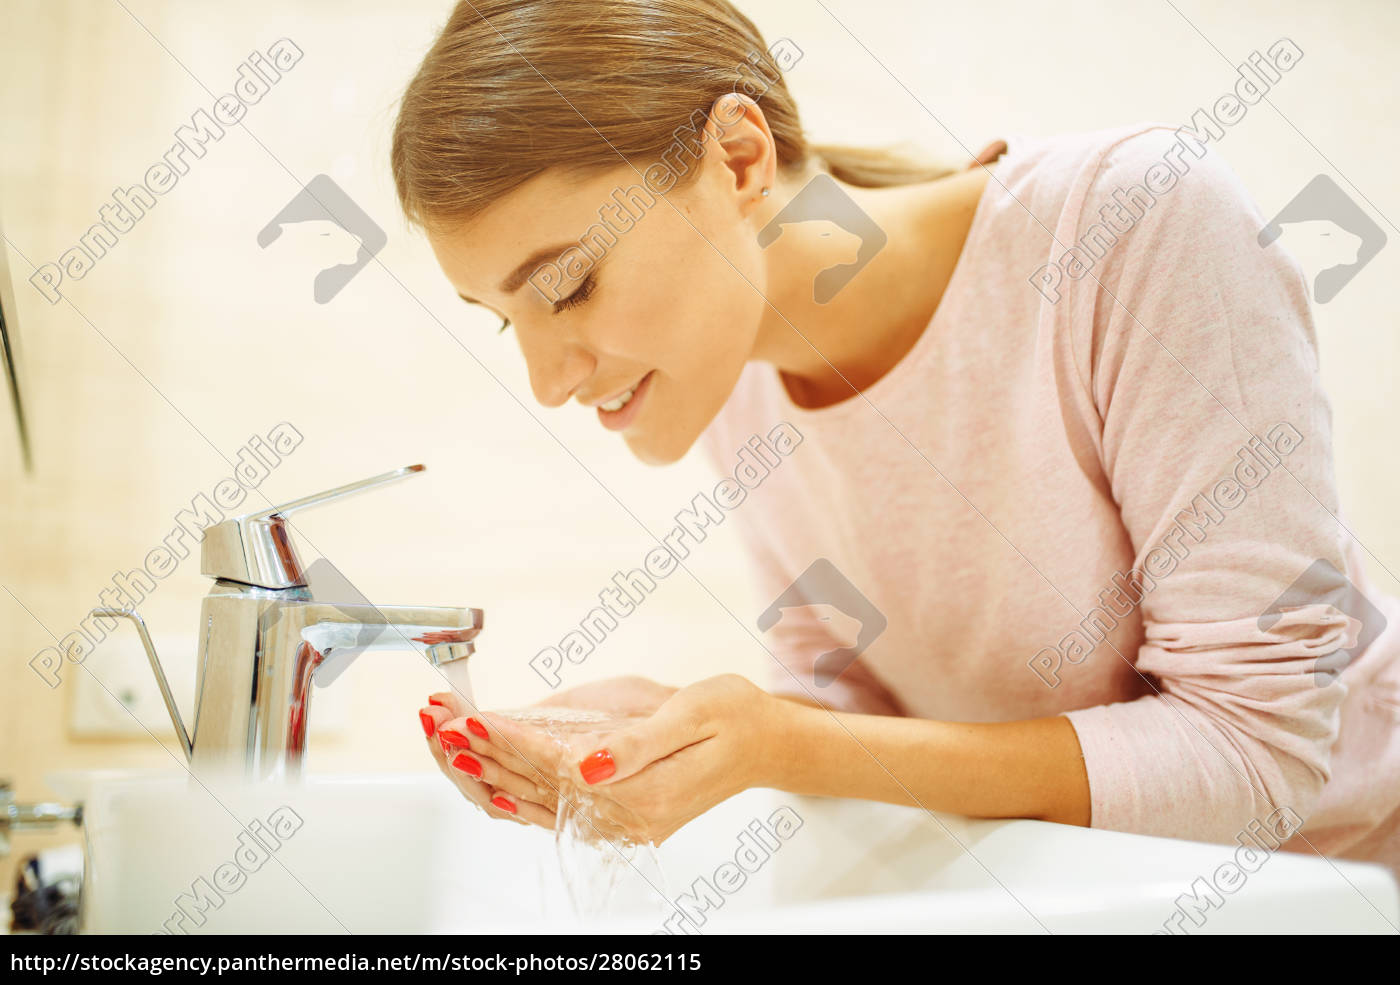 woman, washes, her, face, at, the - 28062115